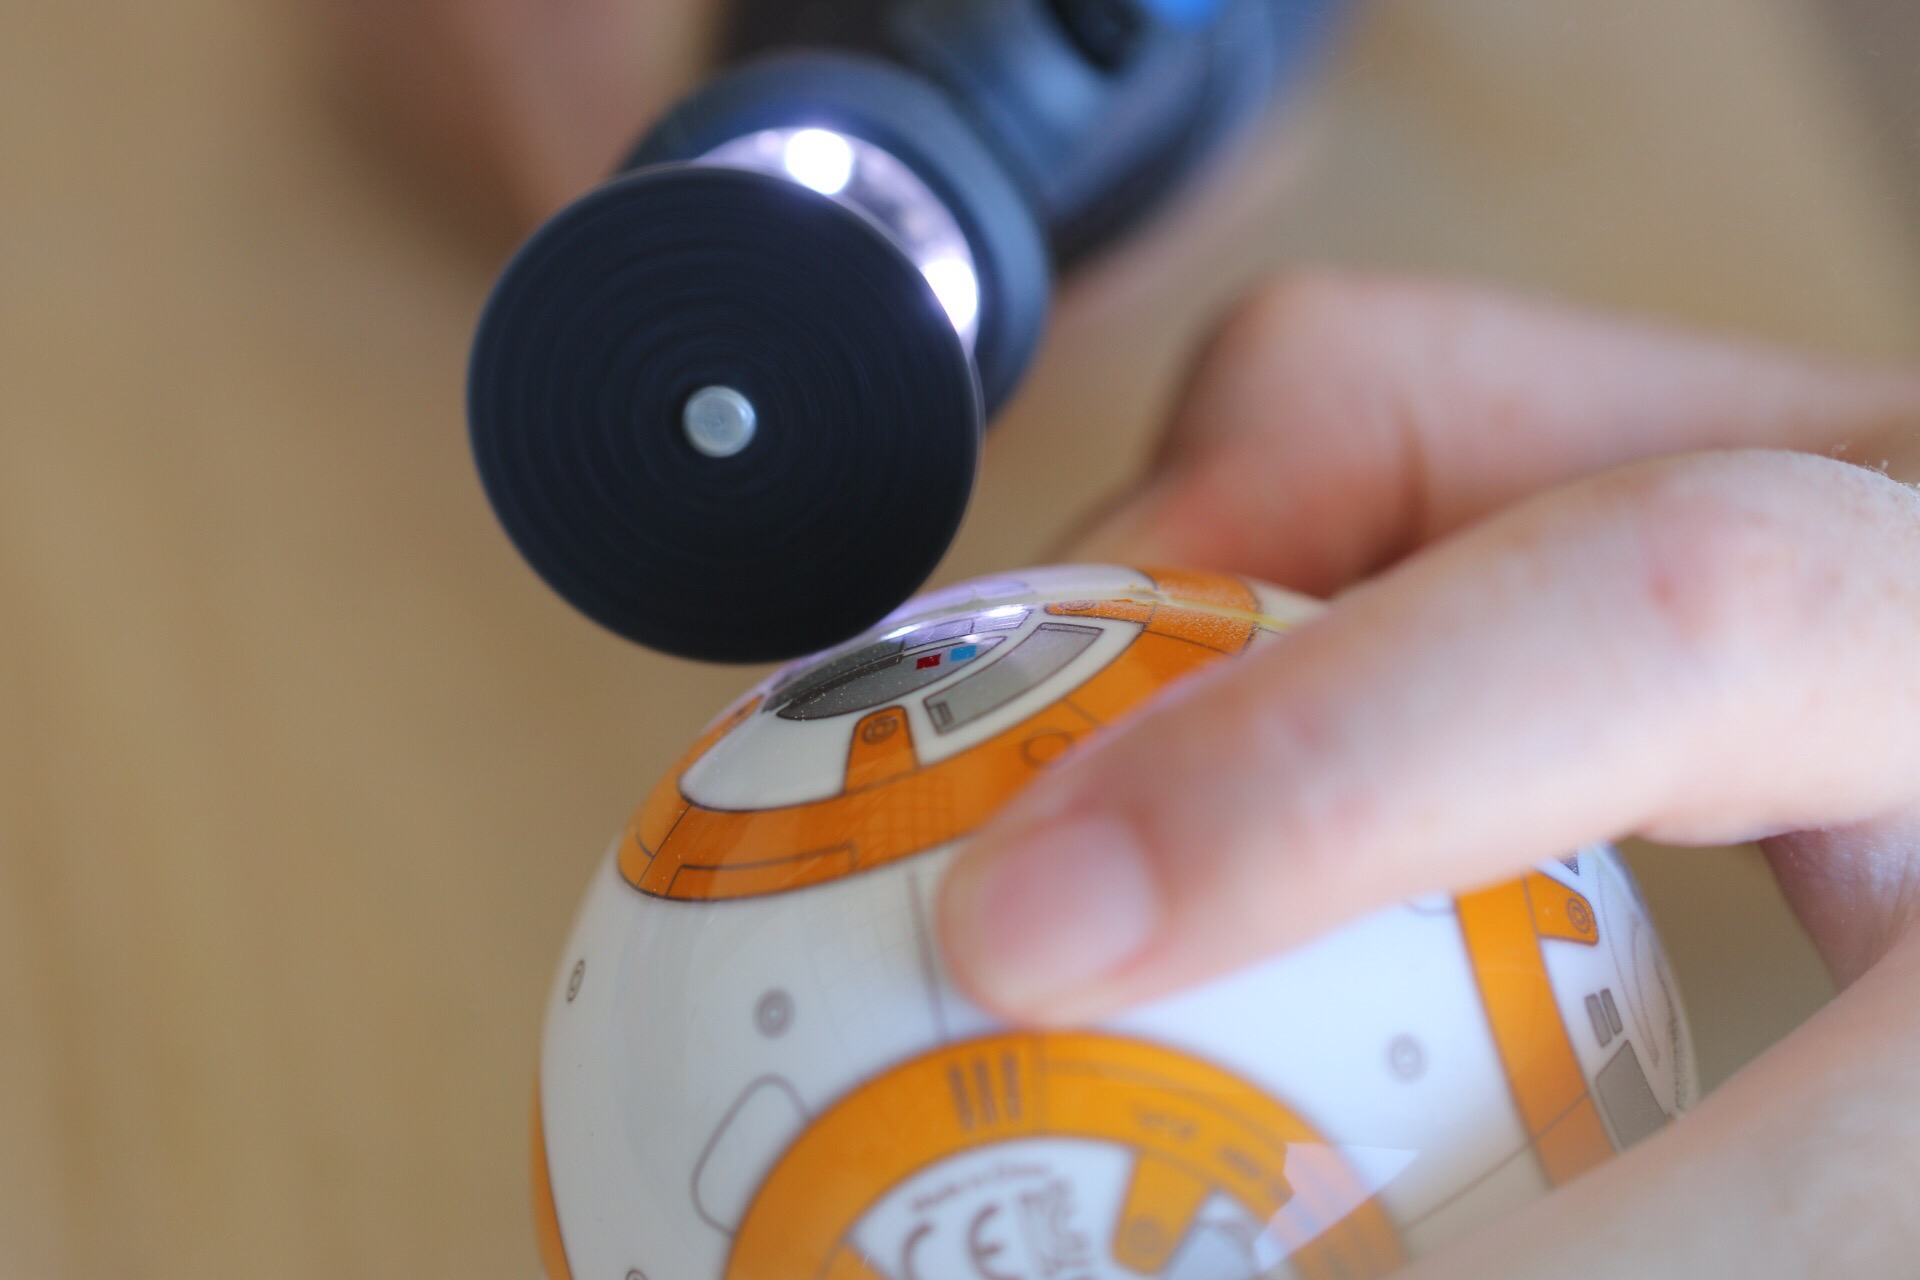 Figure 1-2:Cutting through the BB-8 outer shell required a saw or cutting tool.